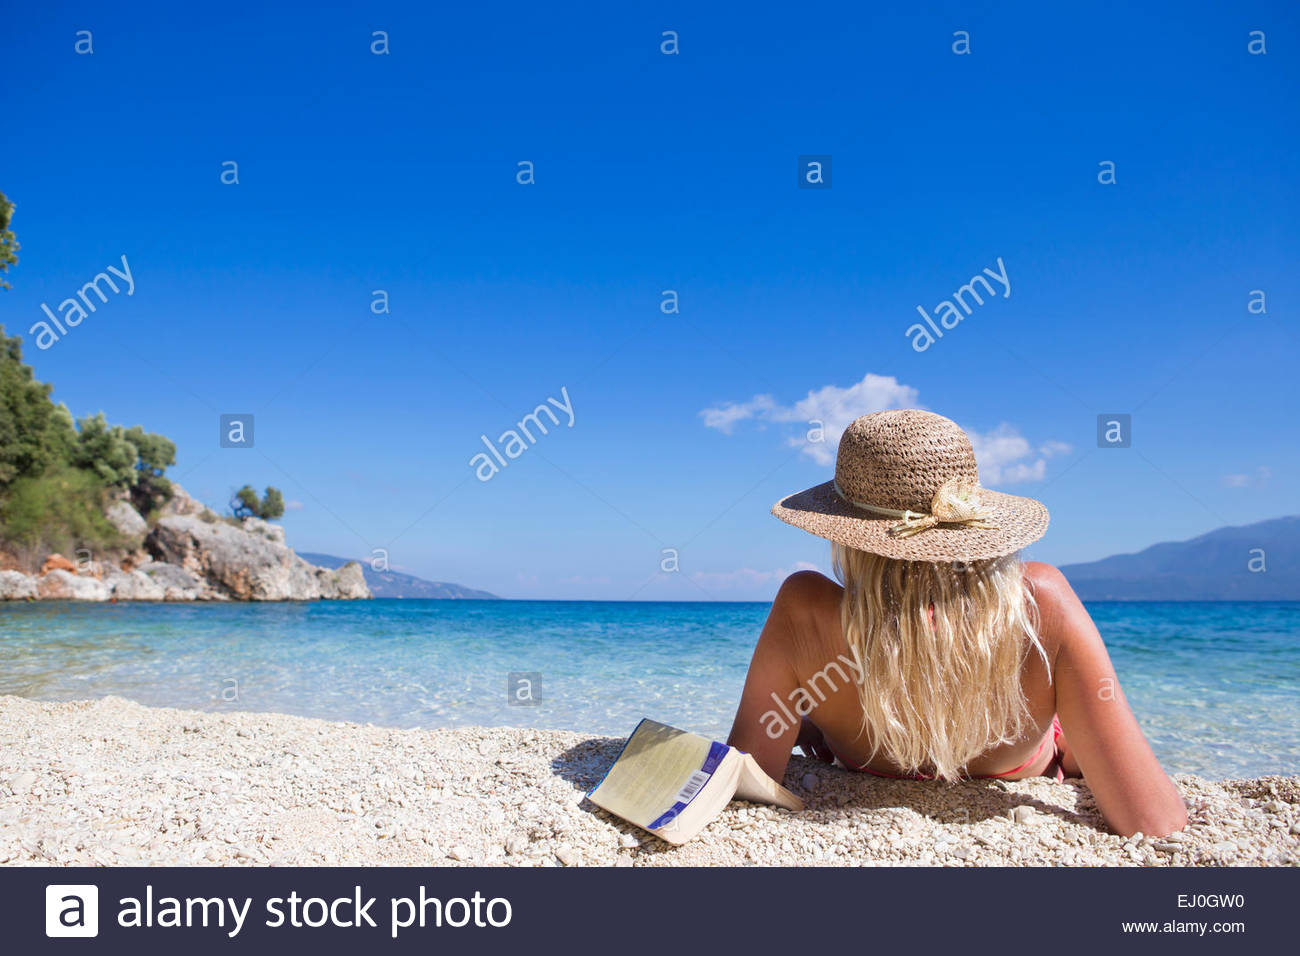 woman, looking out to sea, lying on beach with book - Stock Image